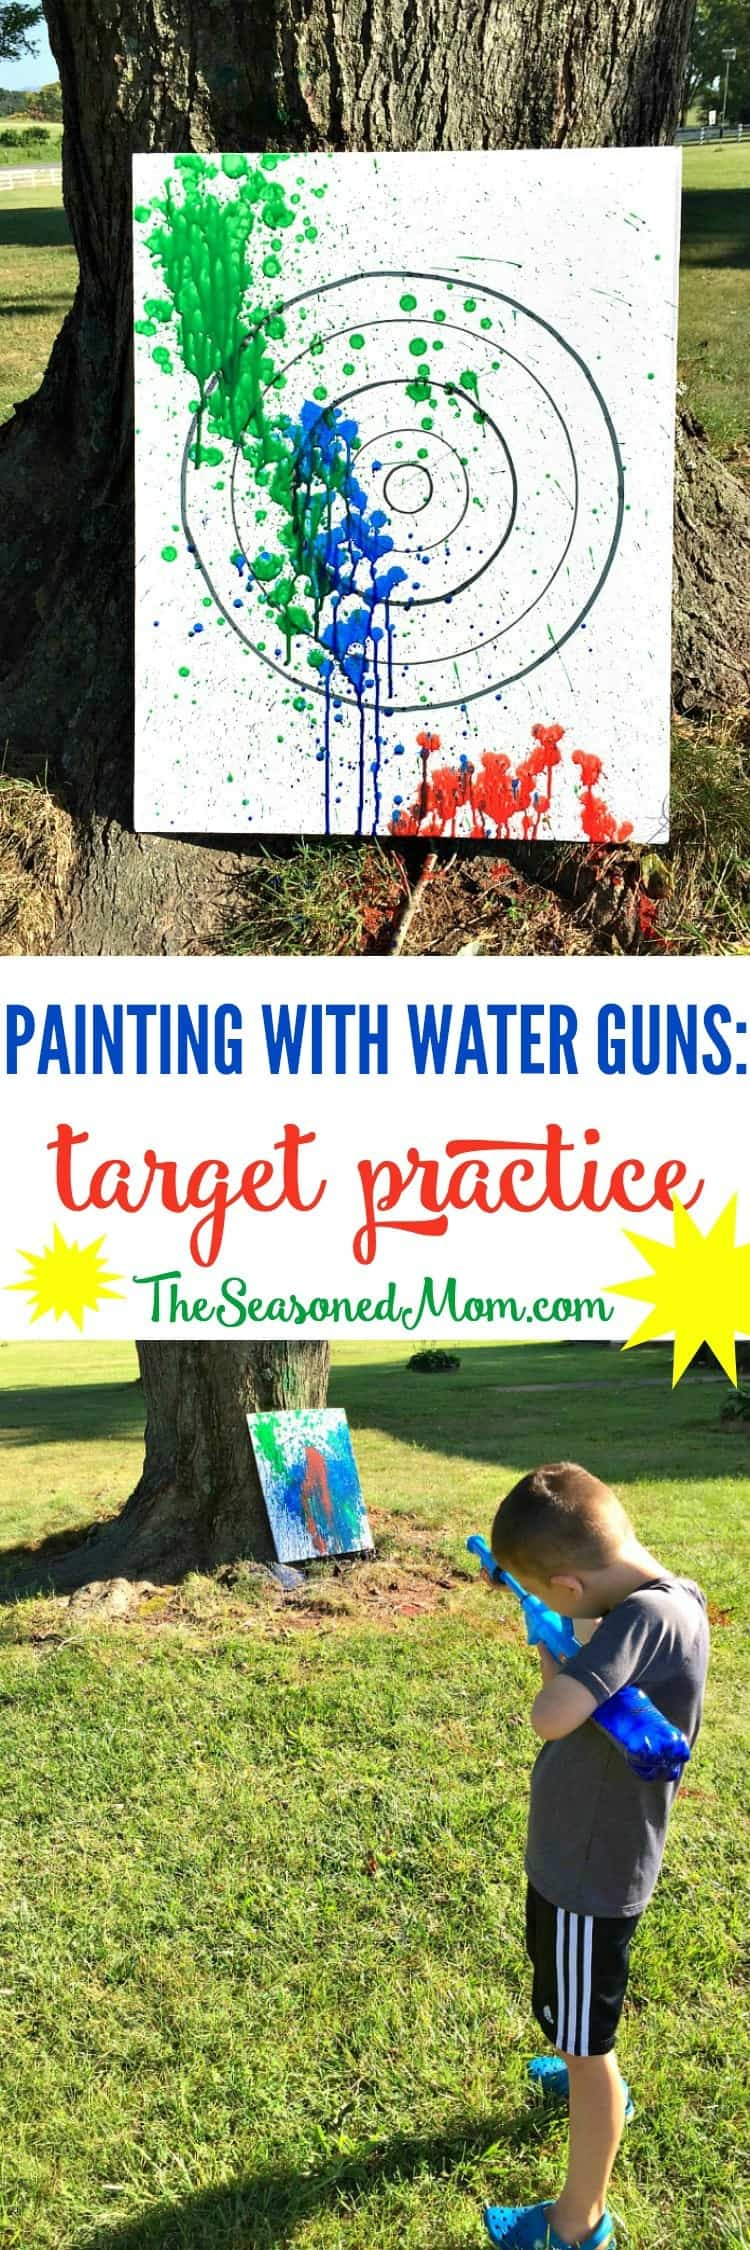 Have a BLAST with this fun outdoor activity for kids! My boys loved Painting with Water Guns while aiming at a target. It's truly the perfect summertime entertainment!